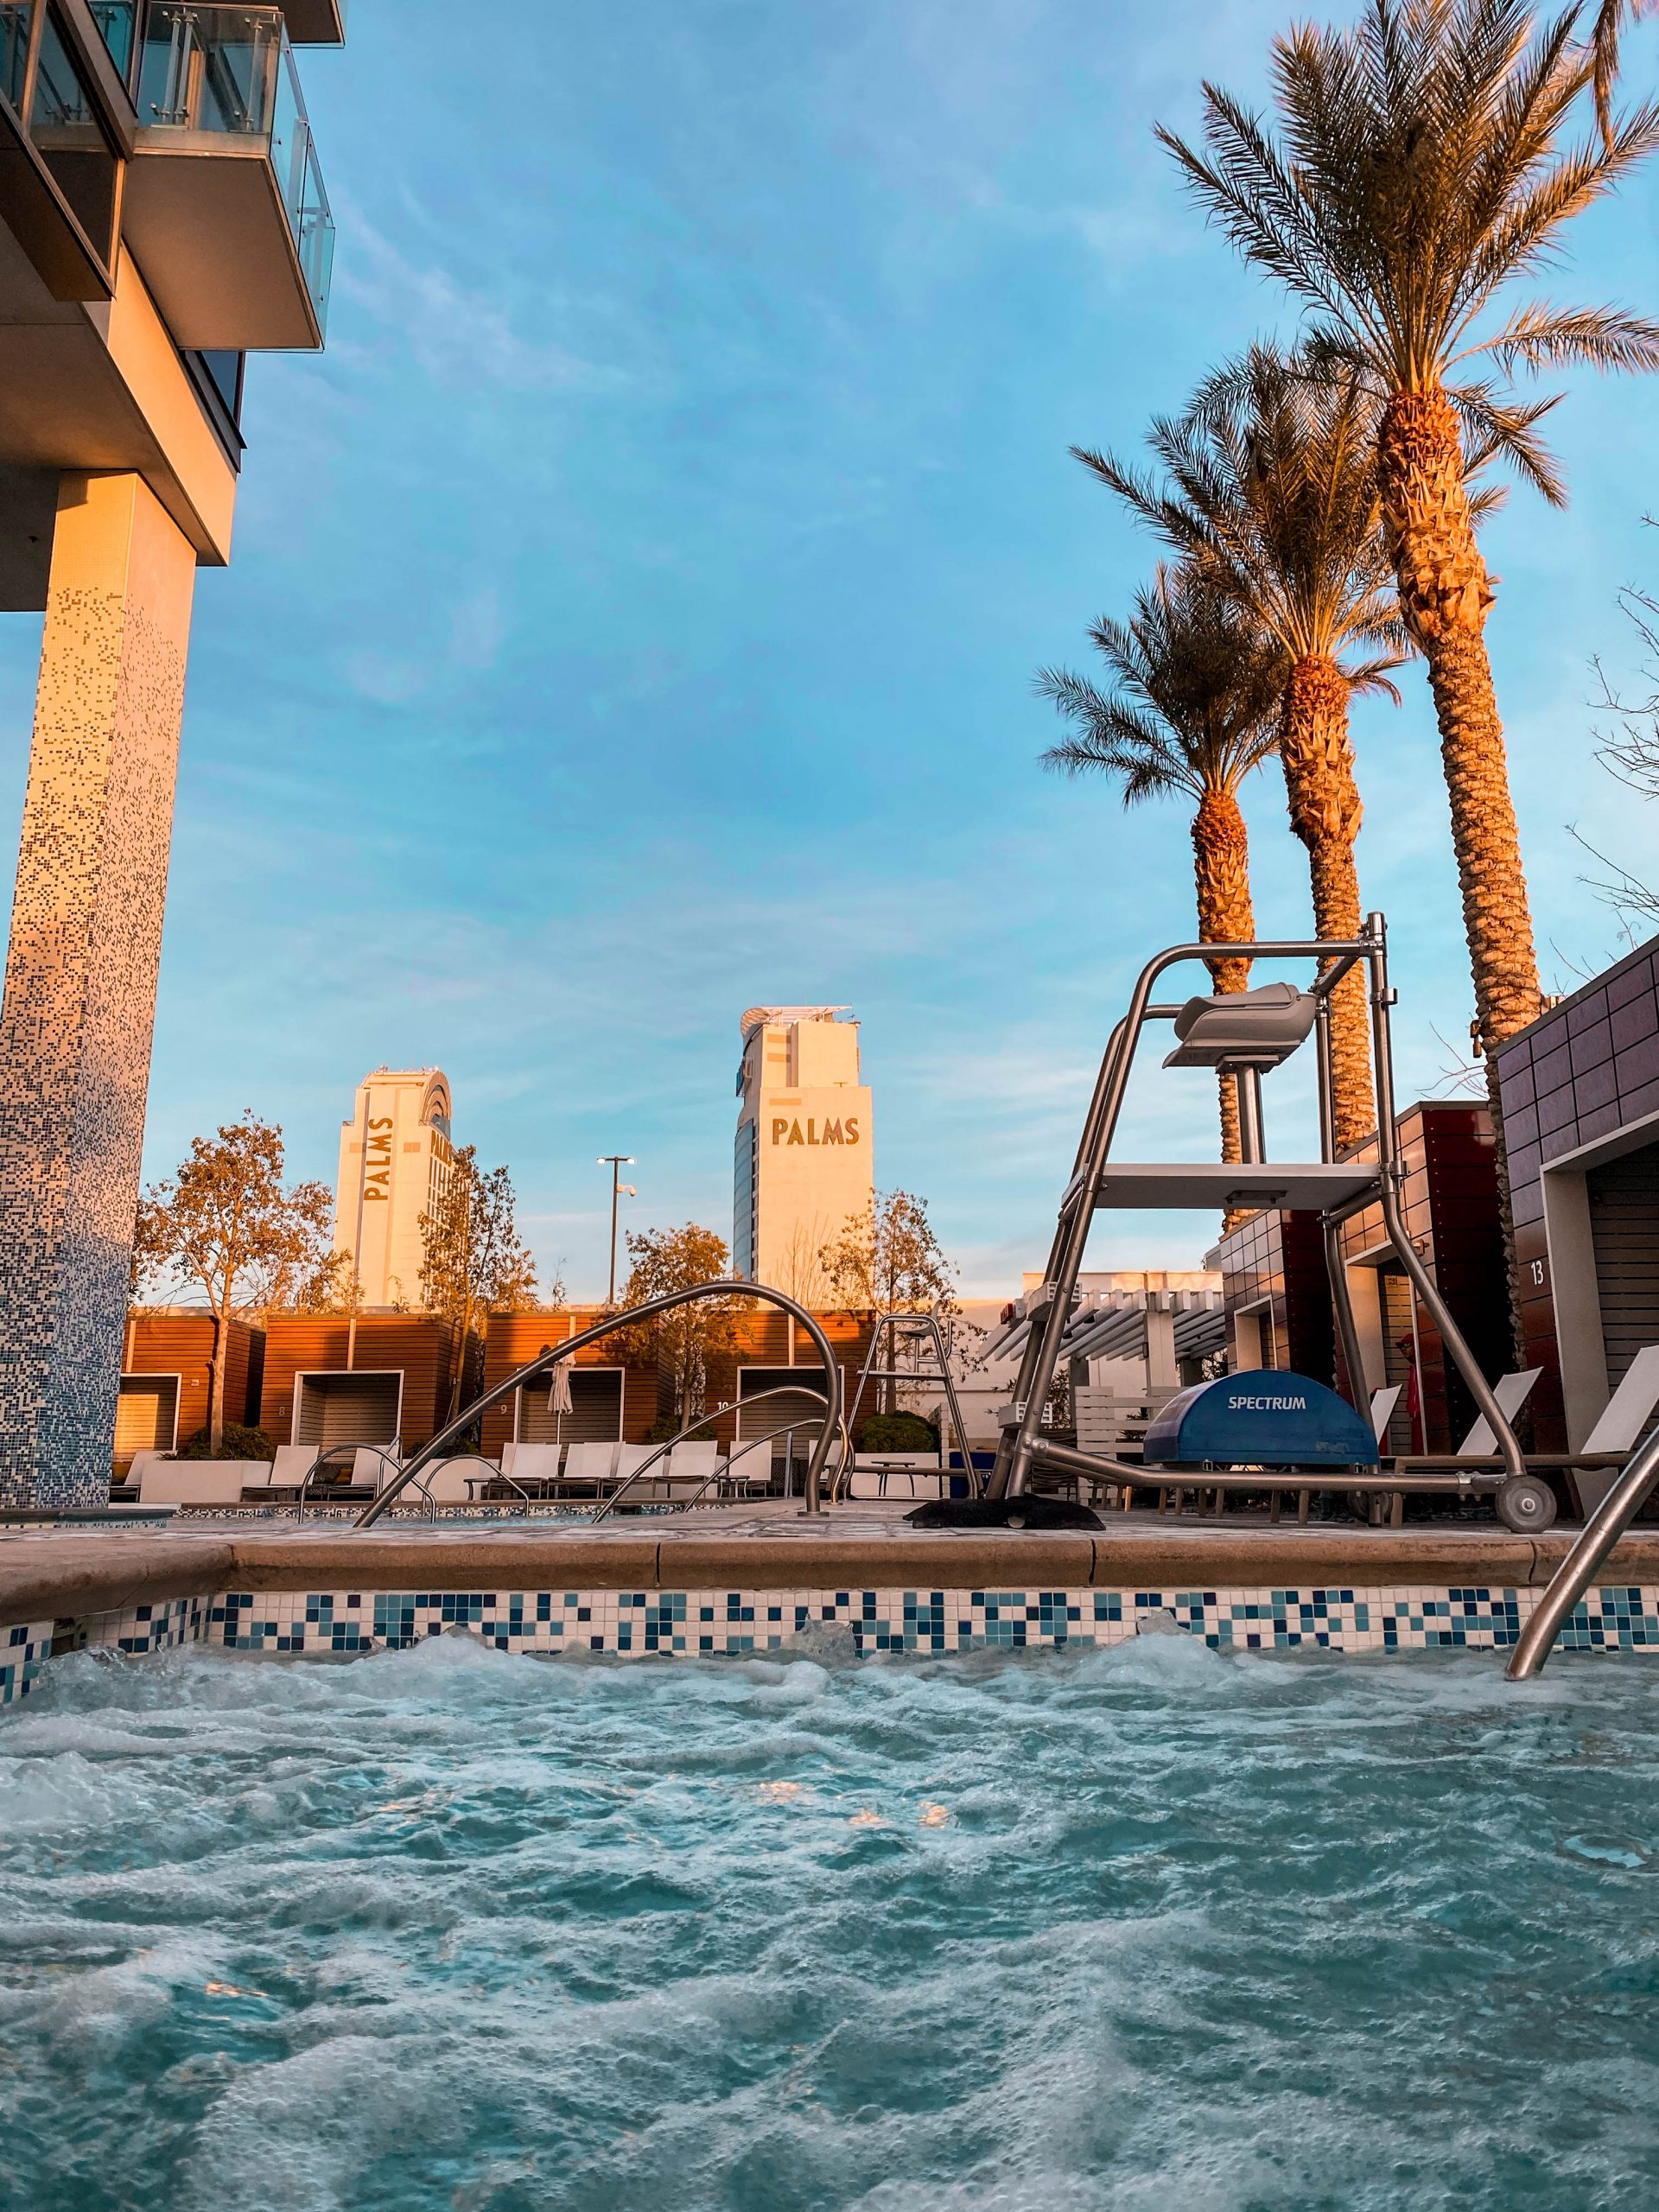 Palms Place Rooftop pool and hot tub, luxury las vegas hotel, vegas airbnb, Palms Casino and Resort